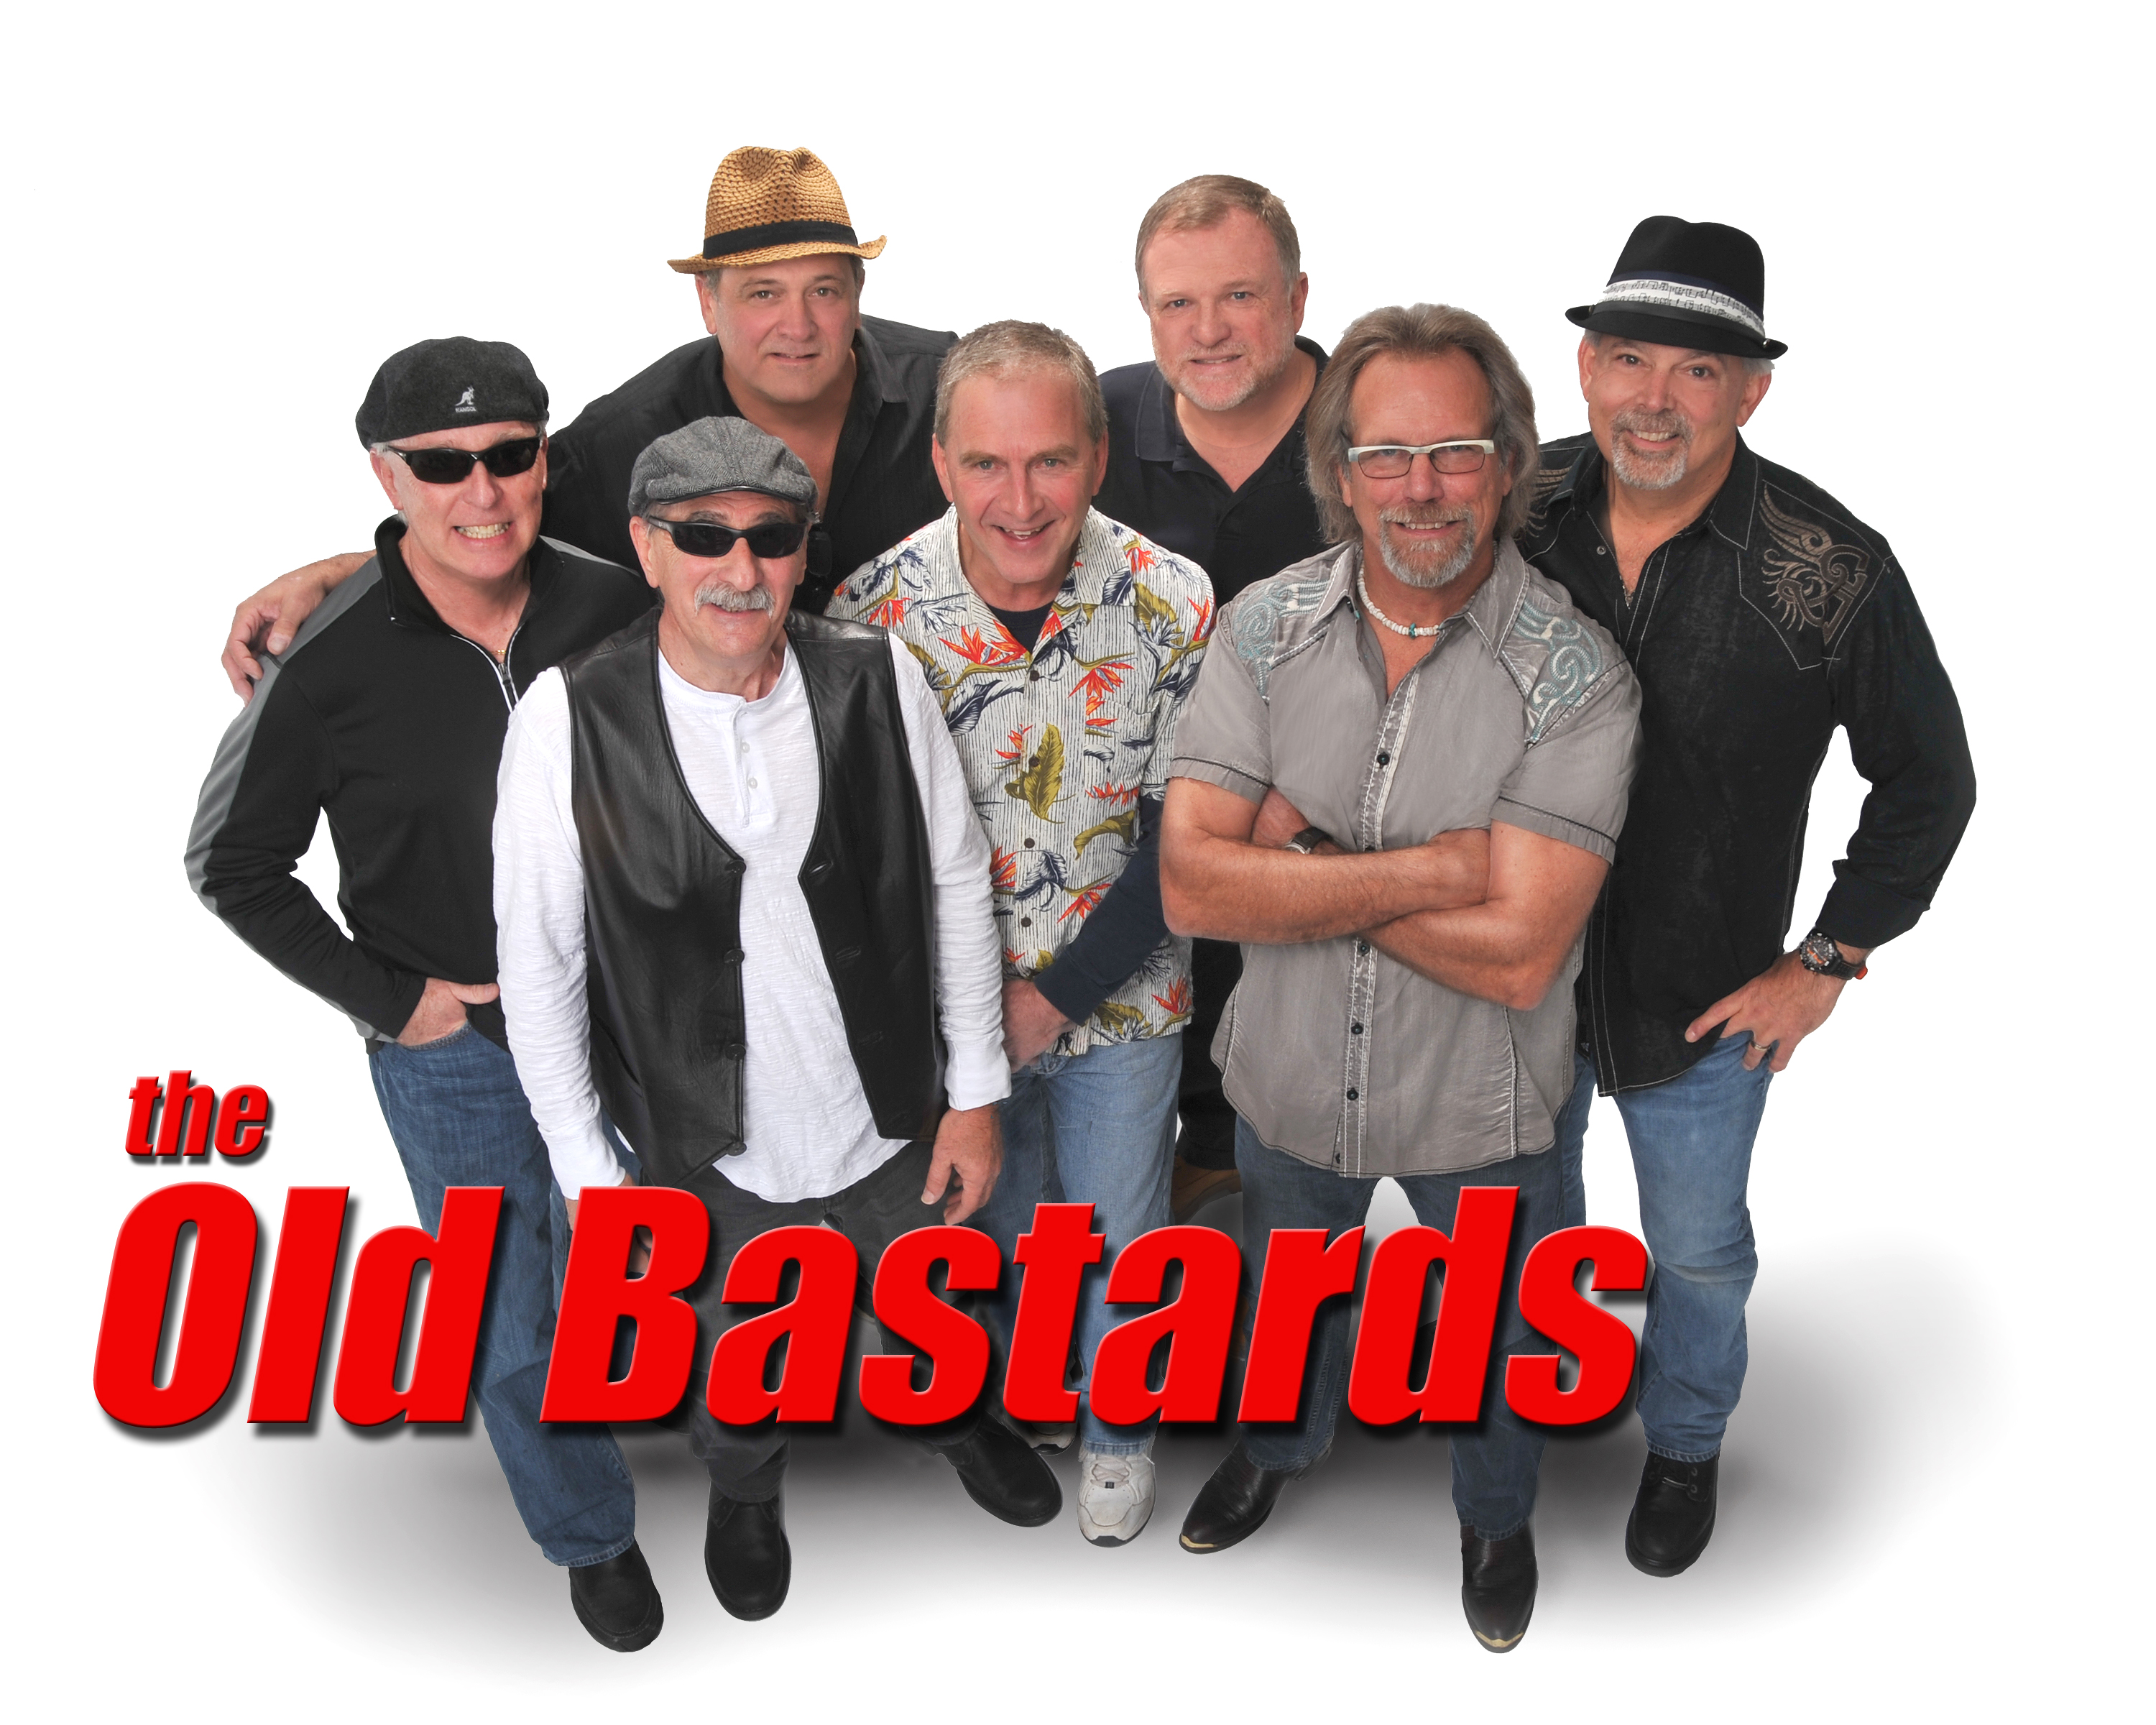 The Old Bastards